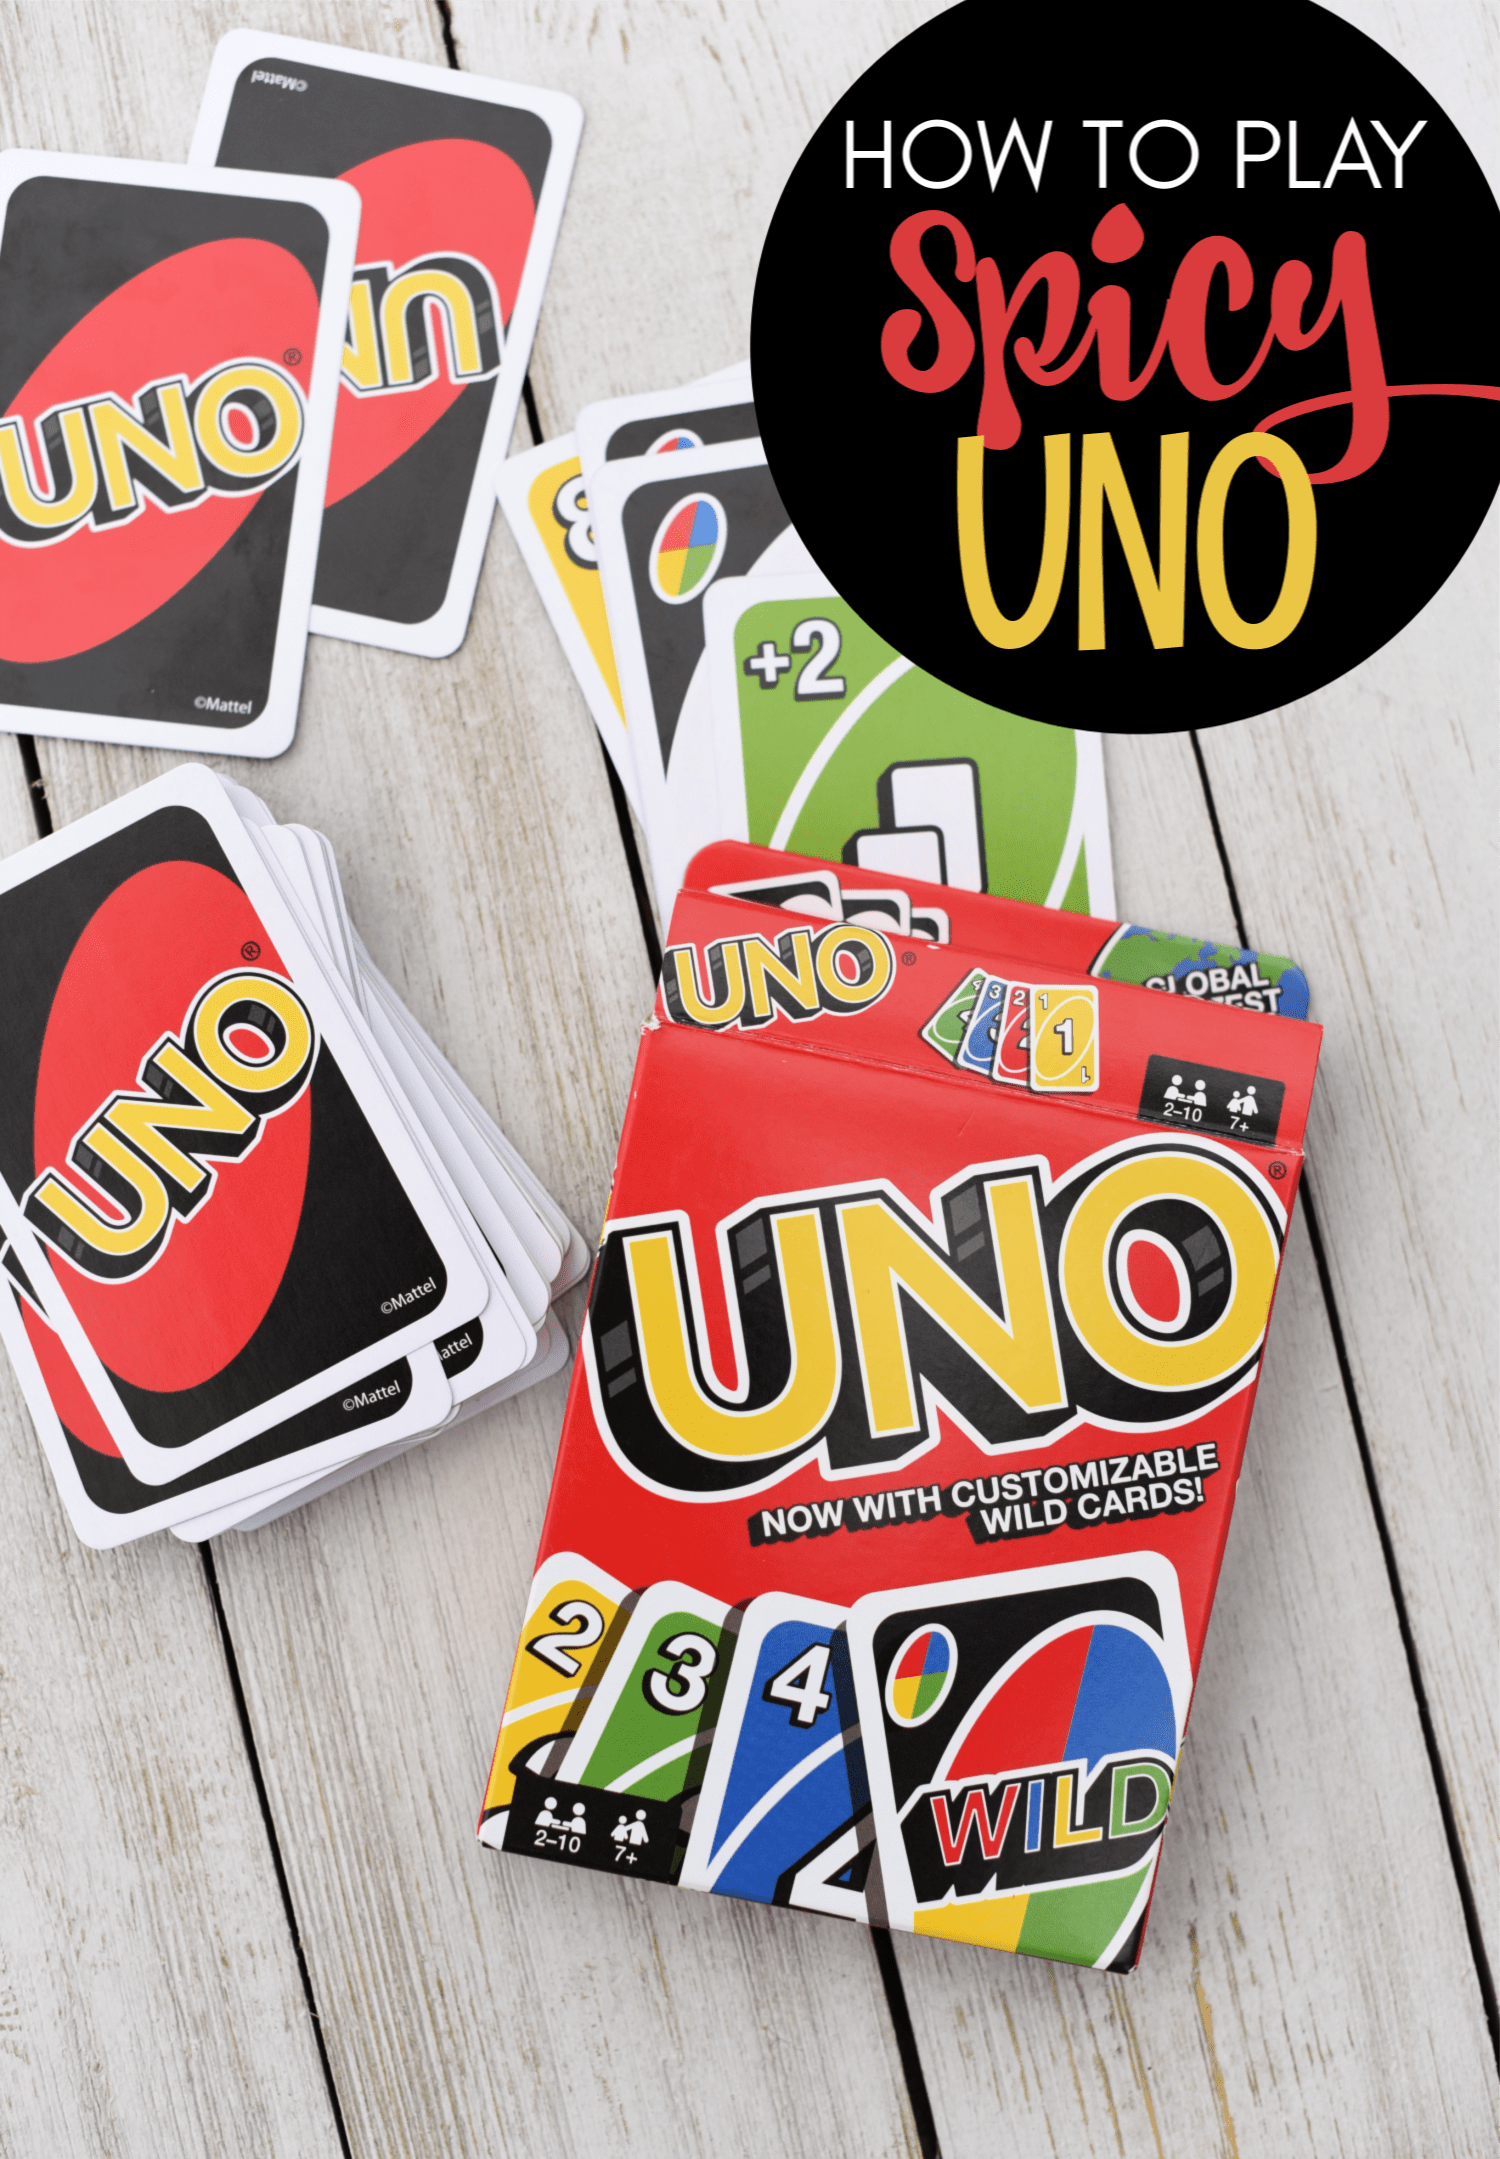 Spicy Uno Rules